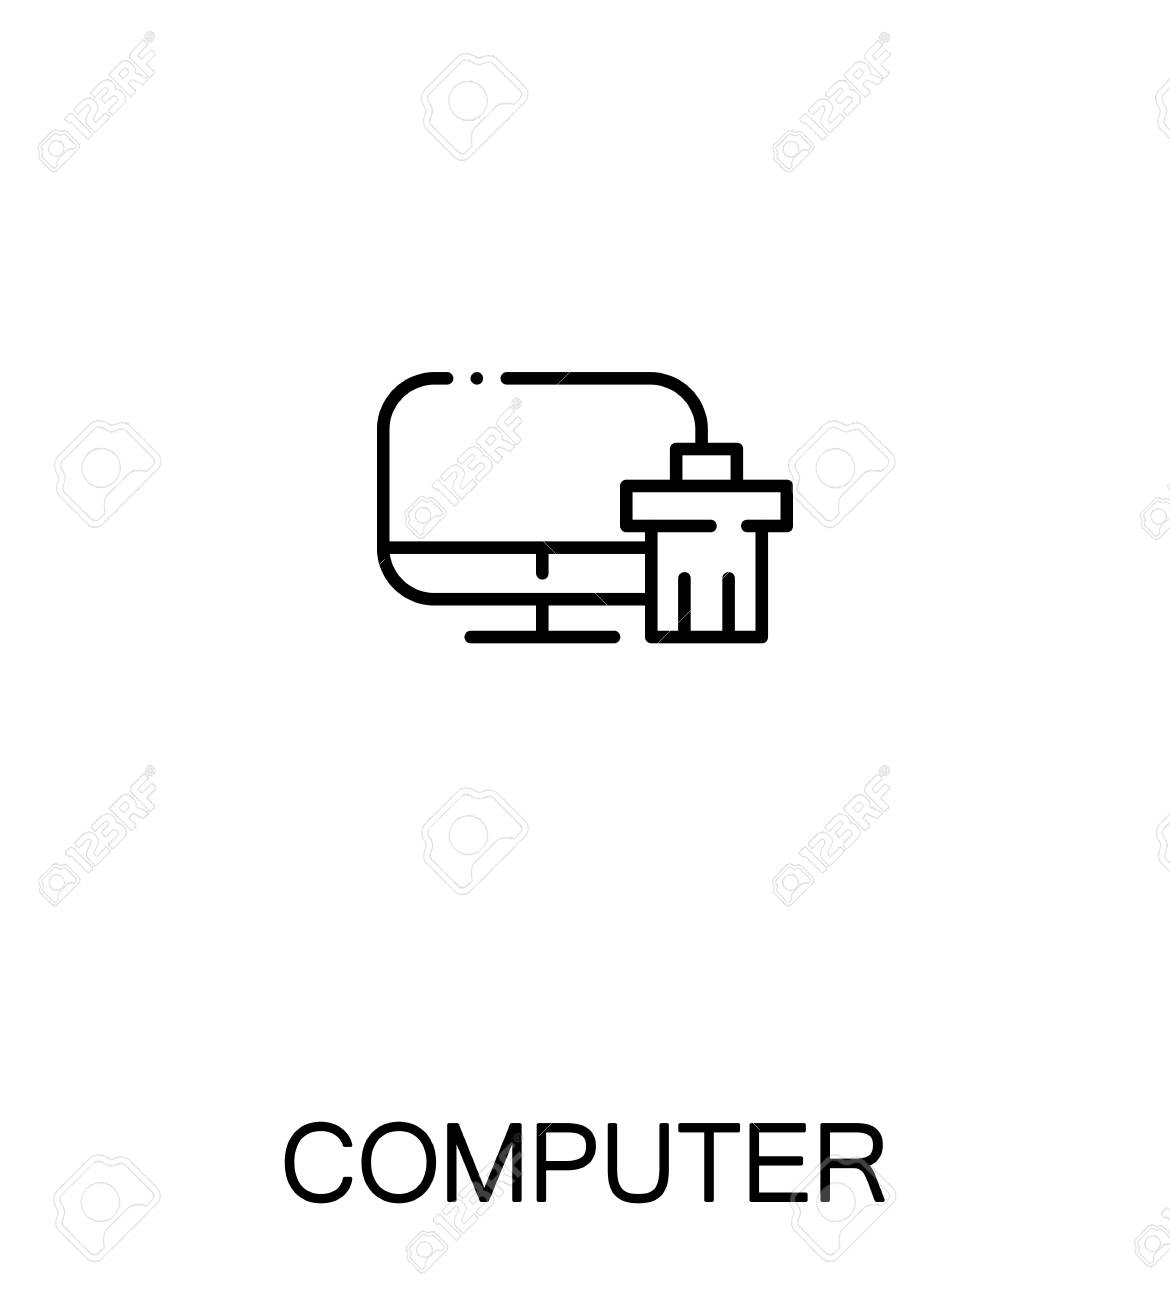 Computer Icon Single High Quality Outline Symbol For Web Design